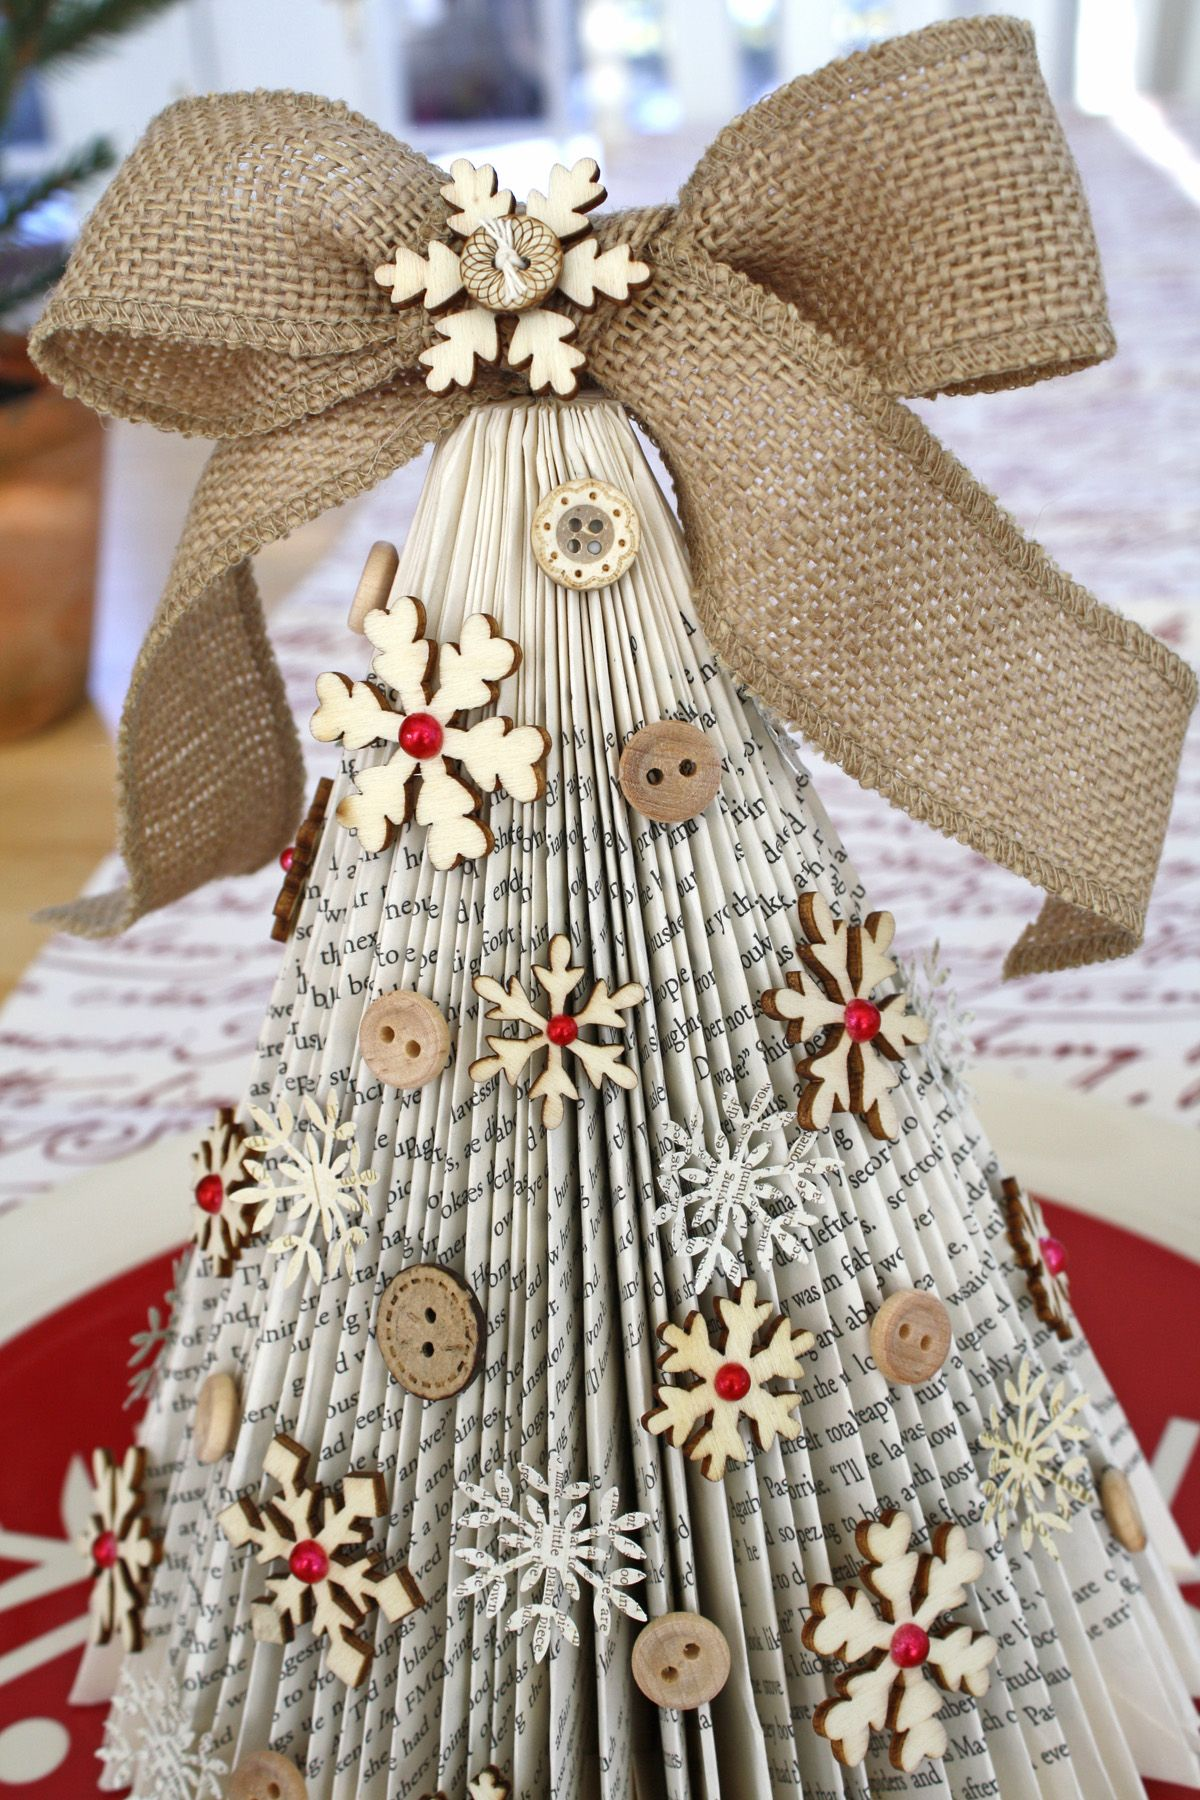 Old Book Christmas Tree Cocoa Daisy Cocoa Daisy Book Christmas Tree Paper Christmas Tree Christmas Crafts Decorations